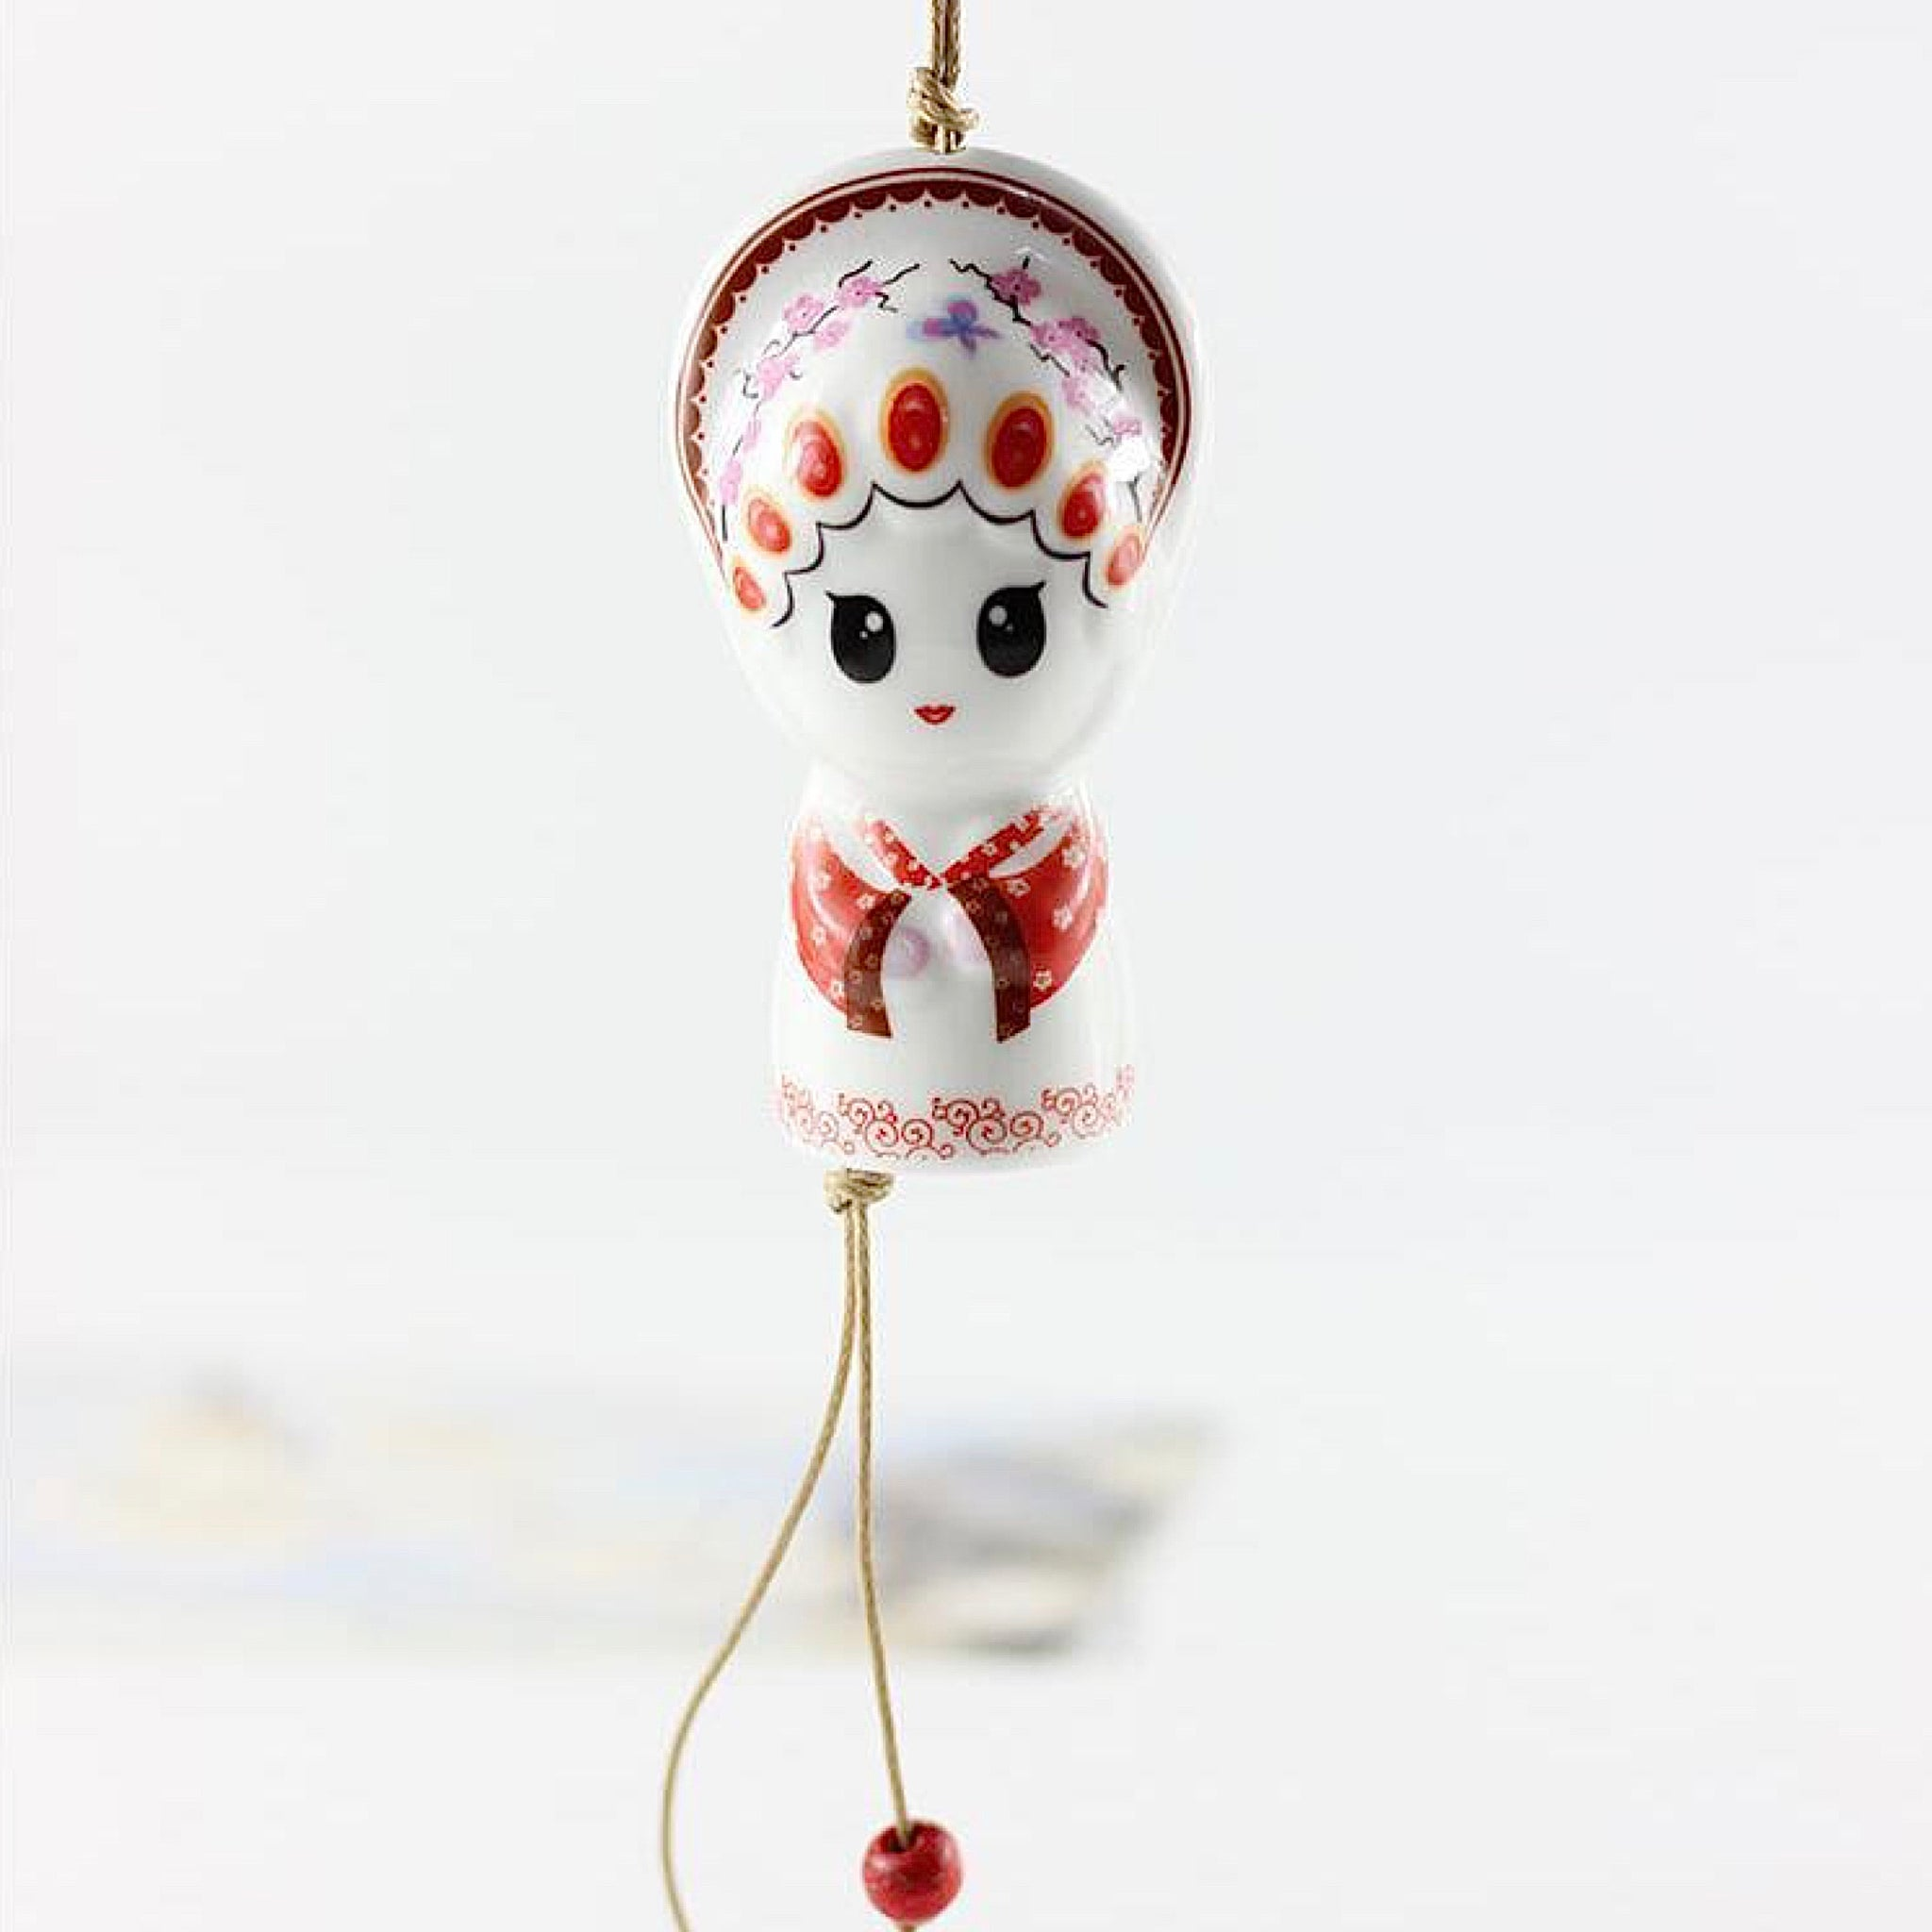 Ceramic Japanese Edo Wind Chimes Handmade Wind Bells Chime Hanging Decoration Window Pendant Japan Creative Gift Red Trend